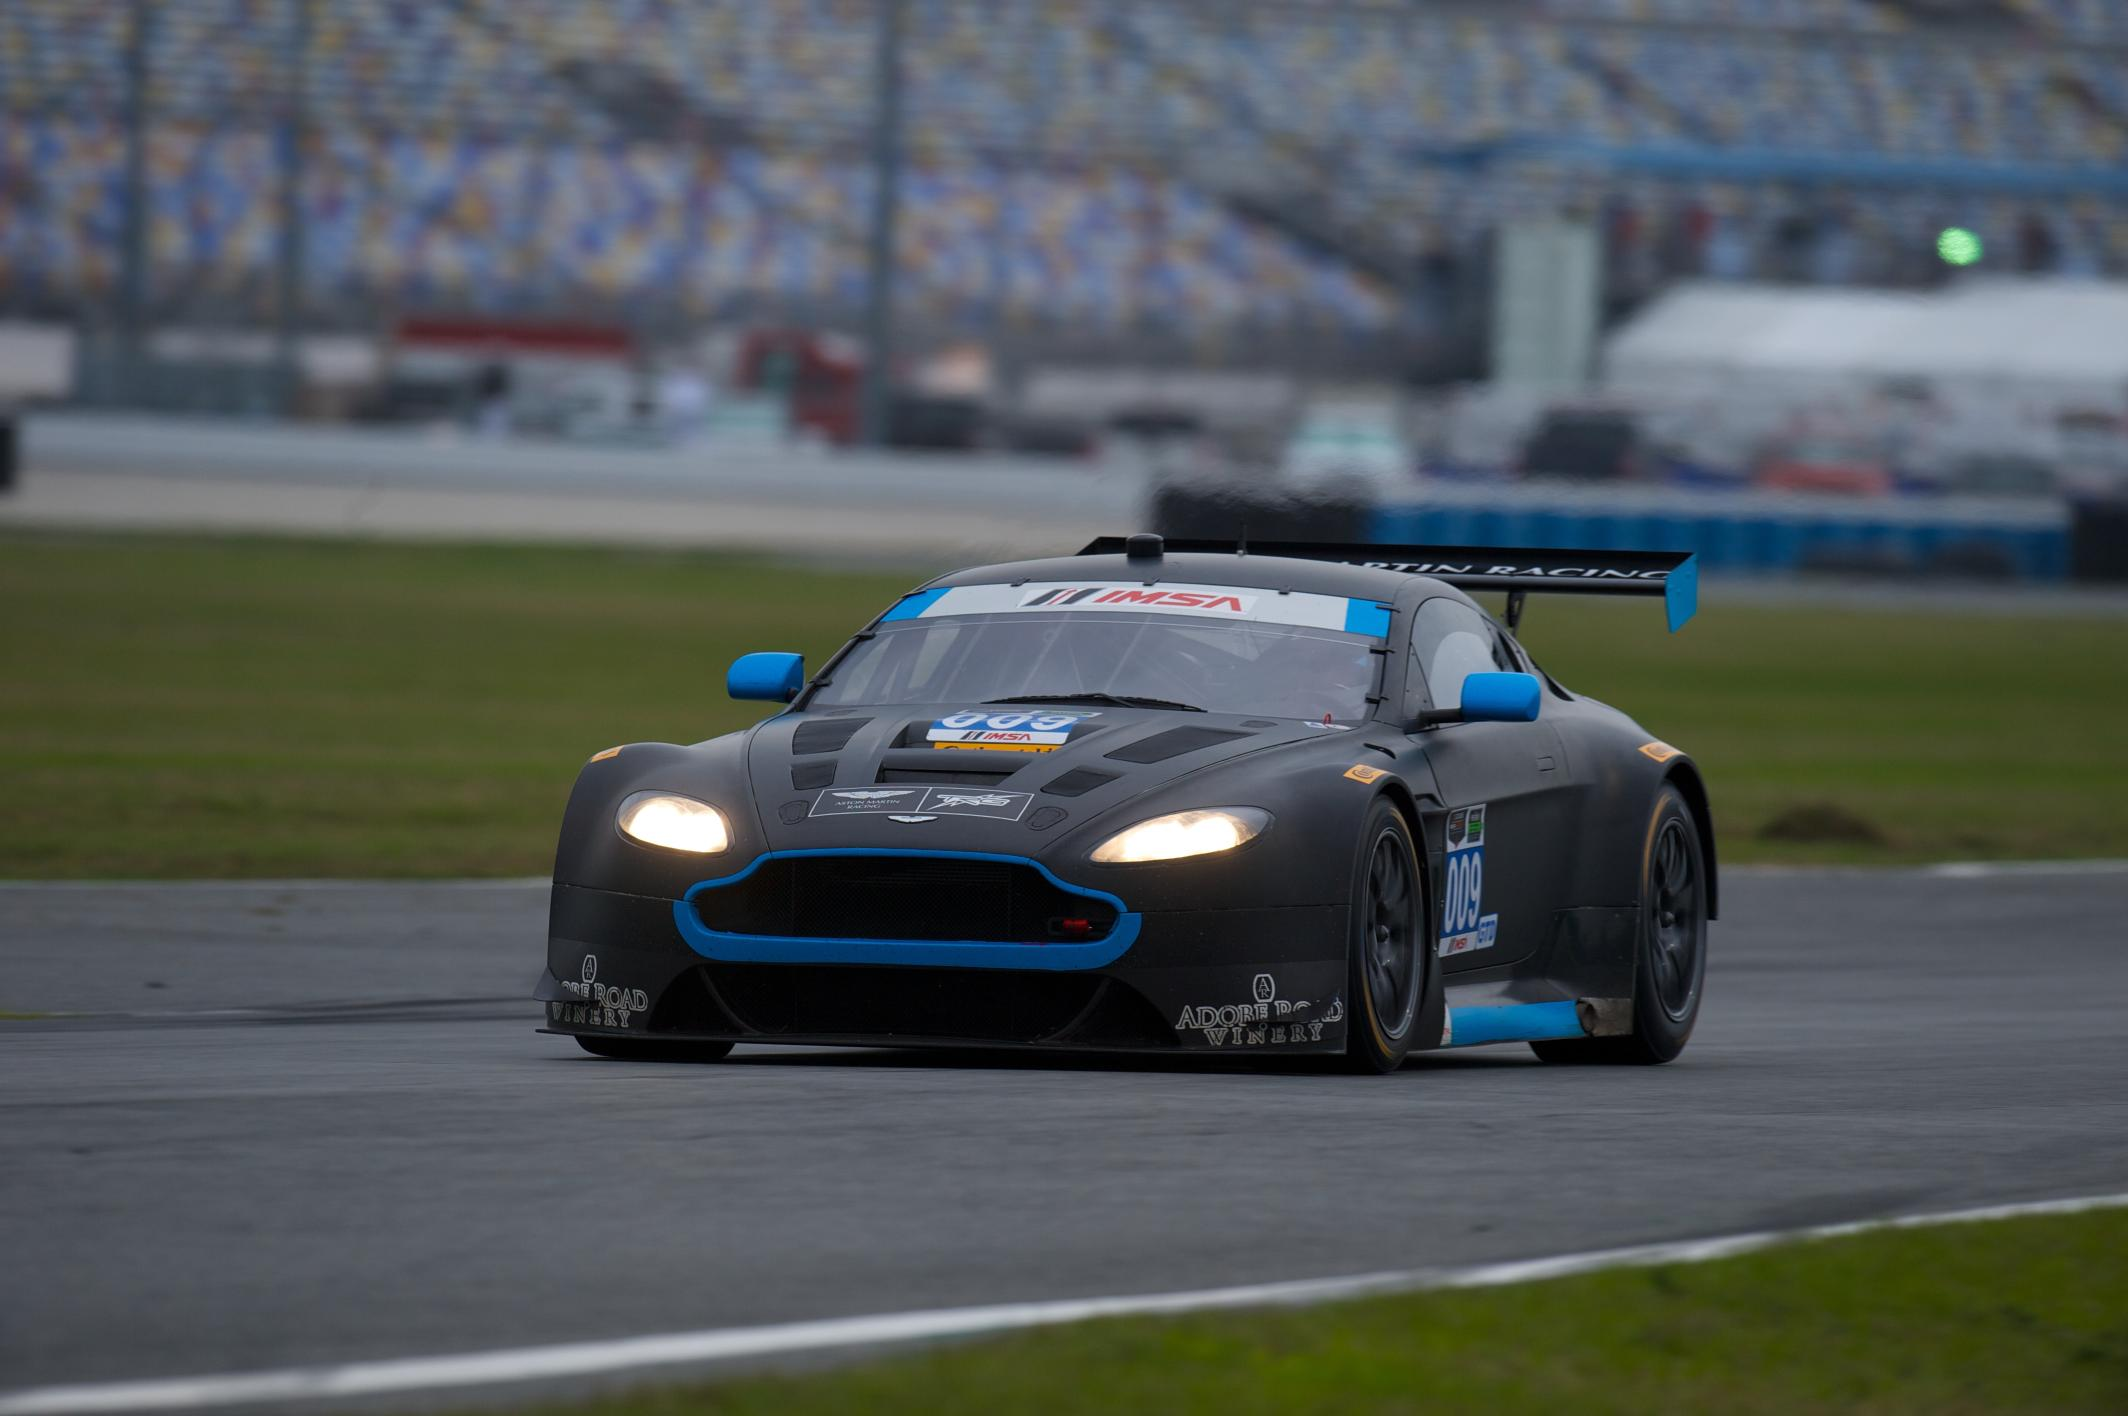 Aston Martin Vantage Daytona Race Car 007